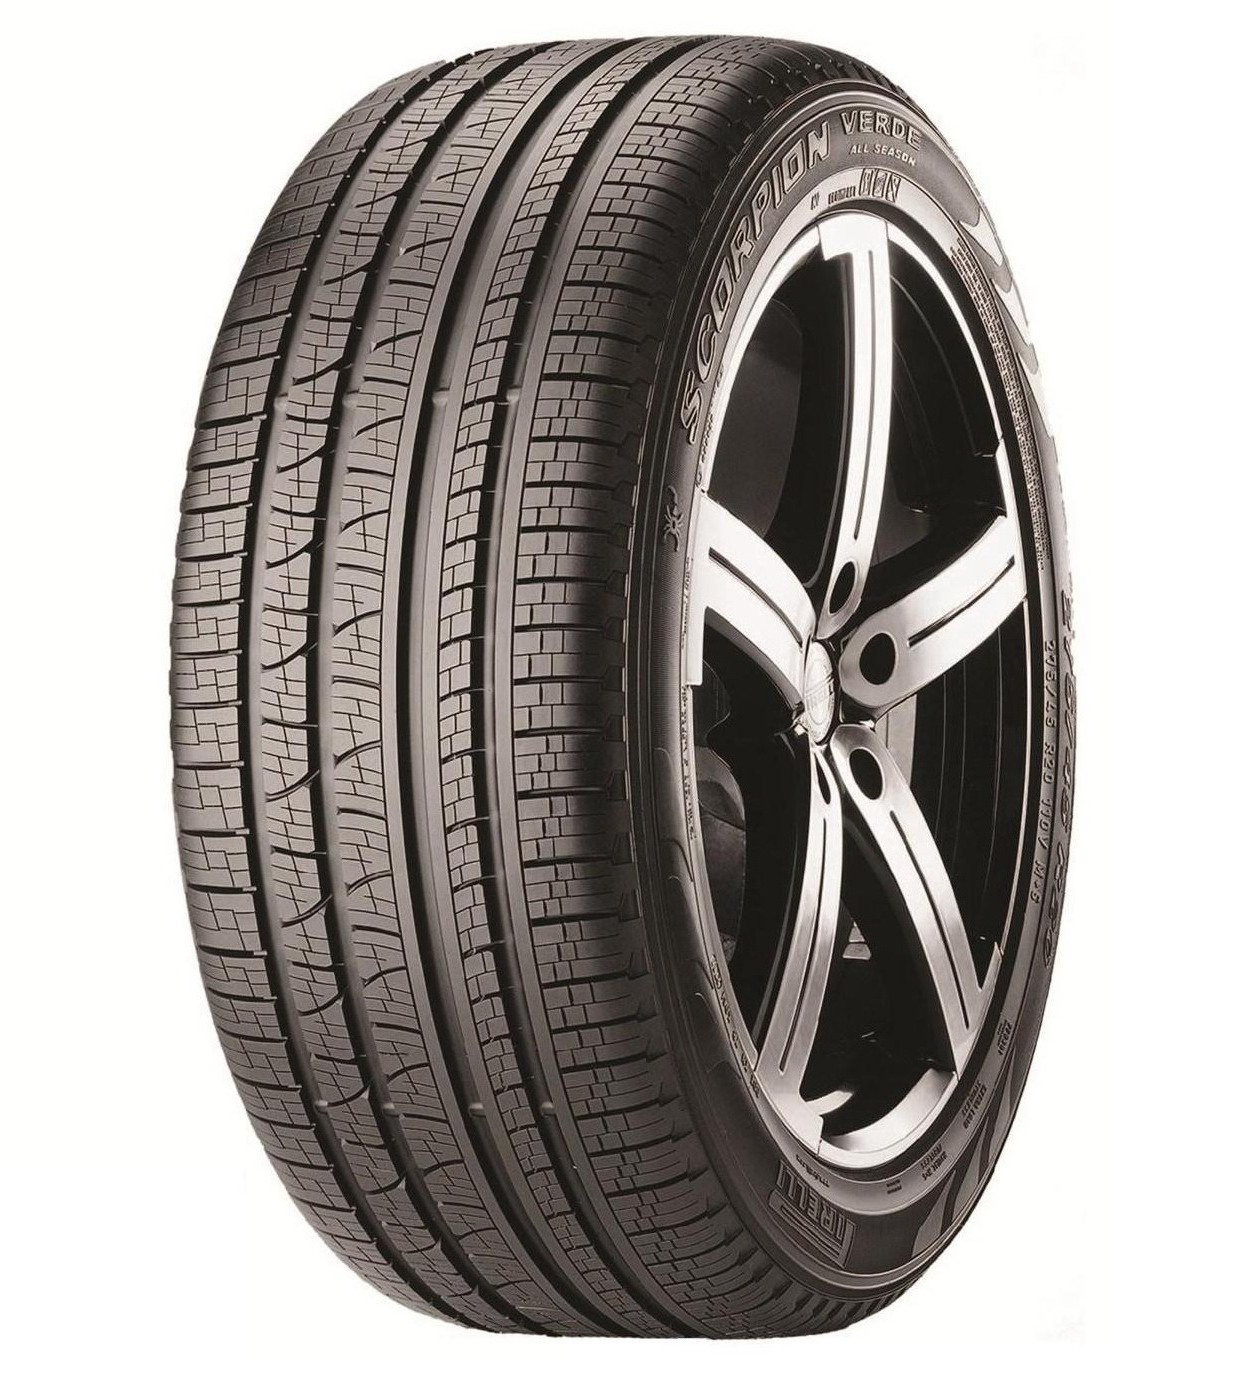 Pirelli Scorpion Verde All-Season Runflat (1)